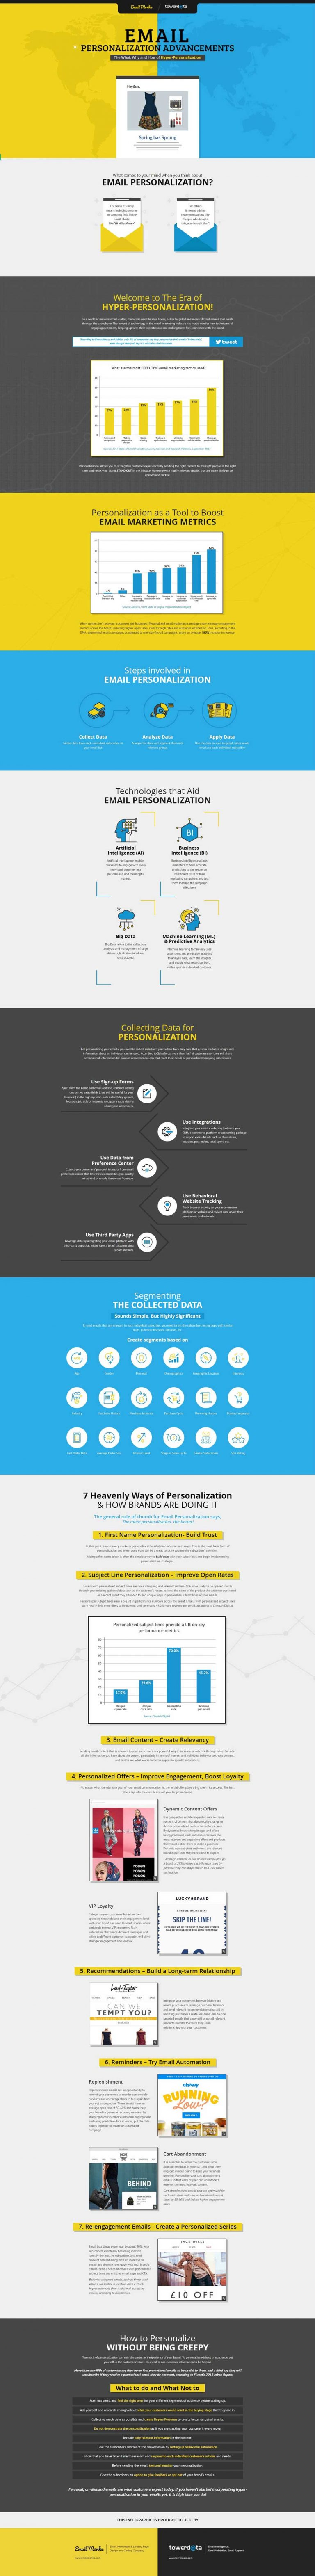 Infographic – Email Personalization: The What Why and How of Hyper Personalized Email